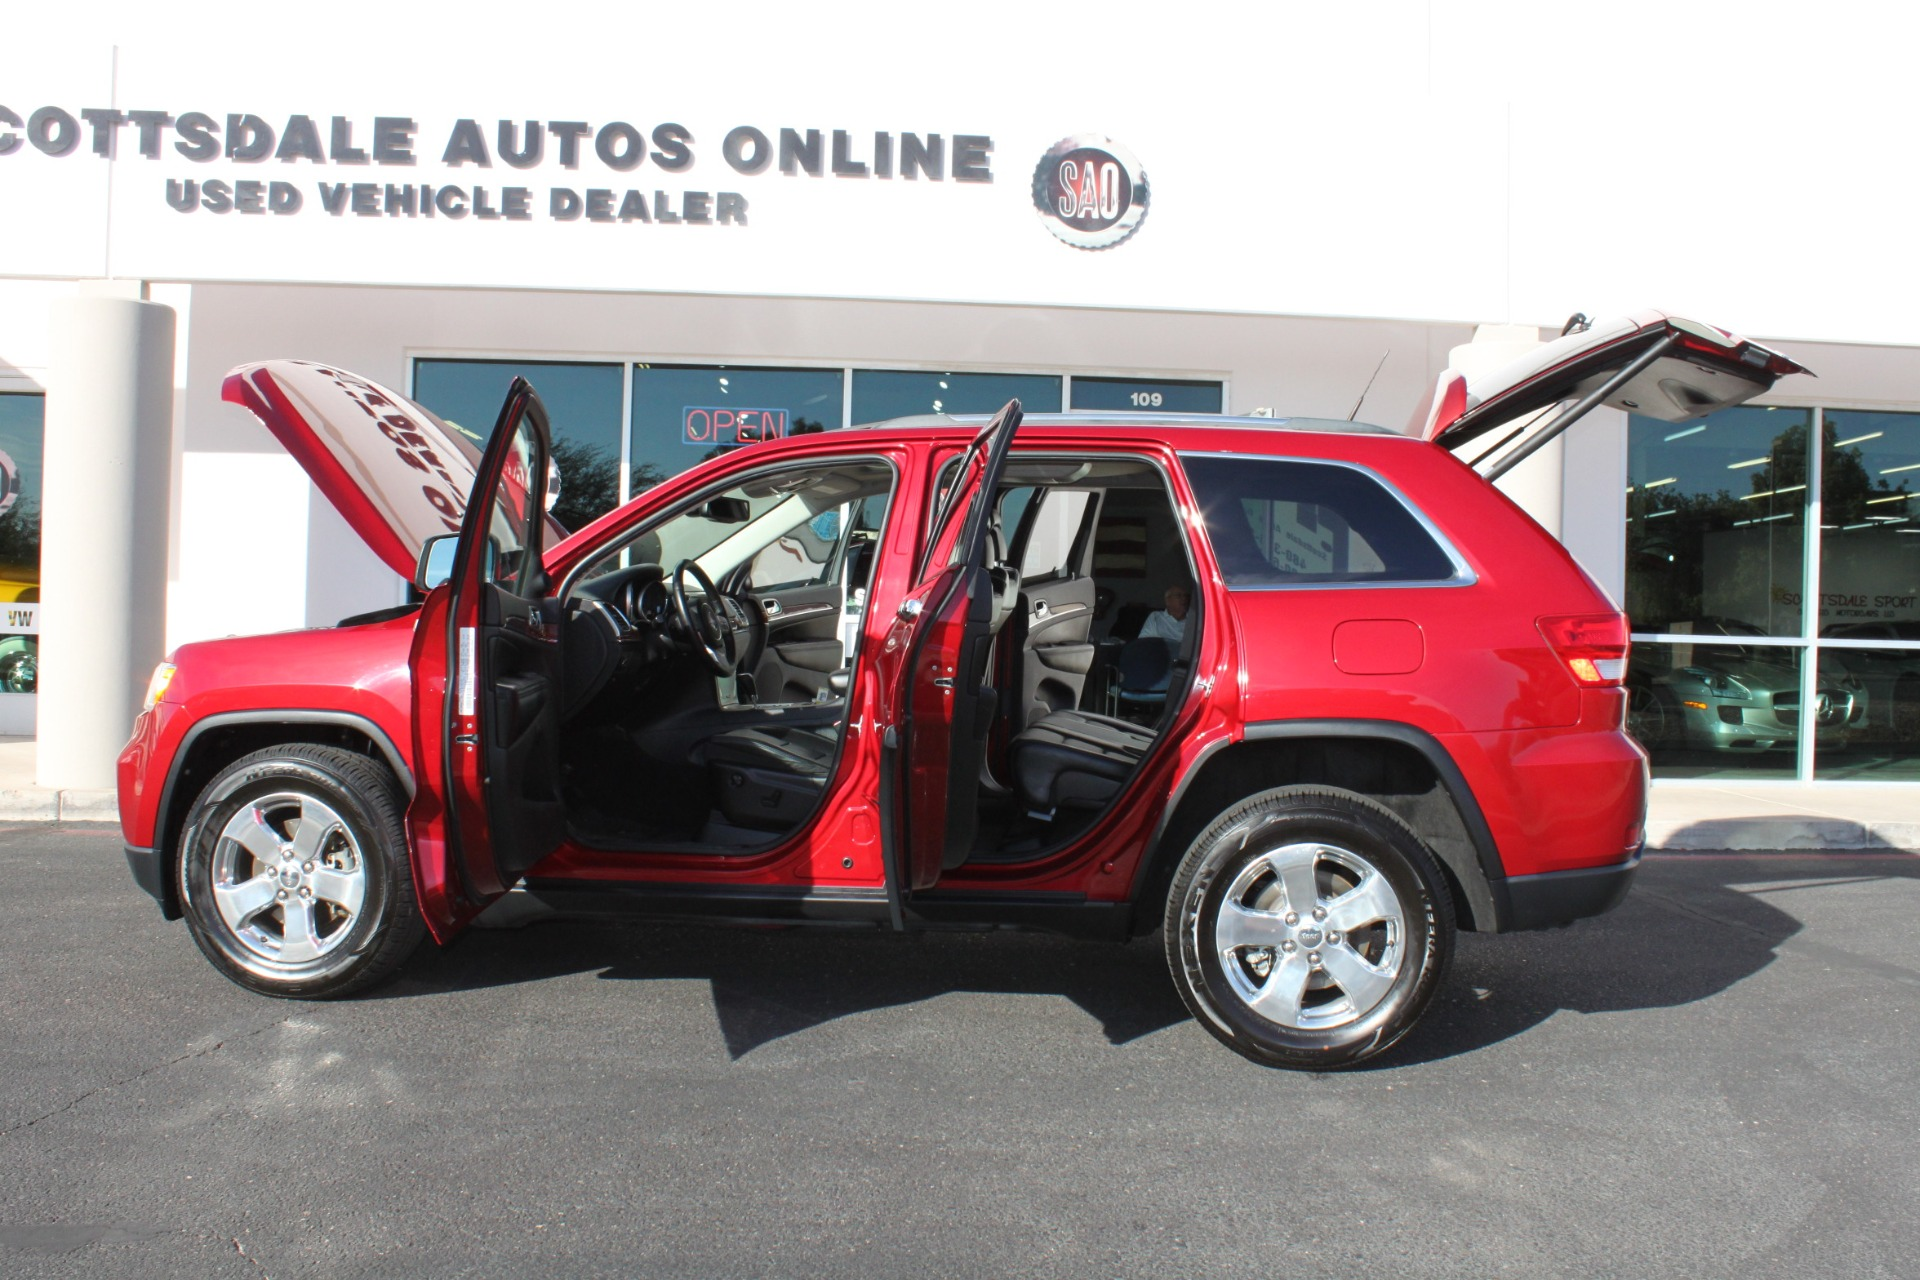 Used-2011-Jeep-Grand-Cherokee-Limited-LS400